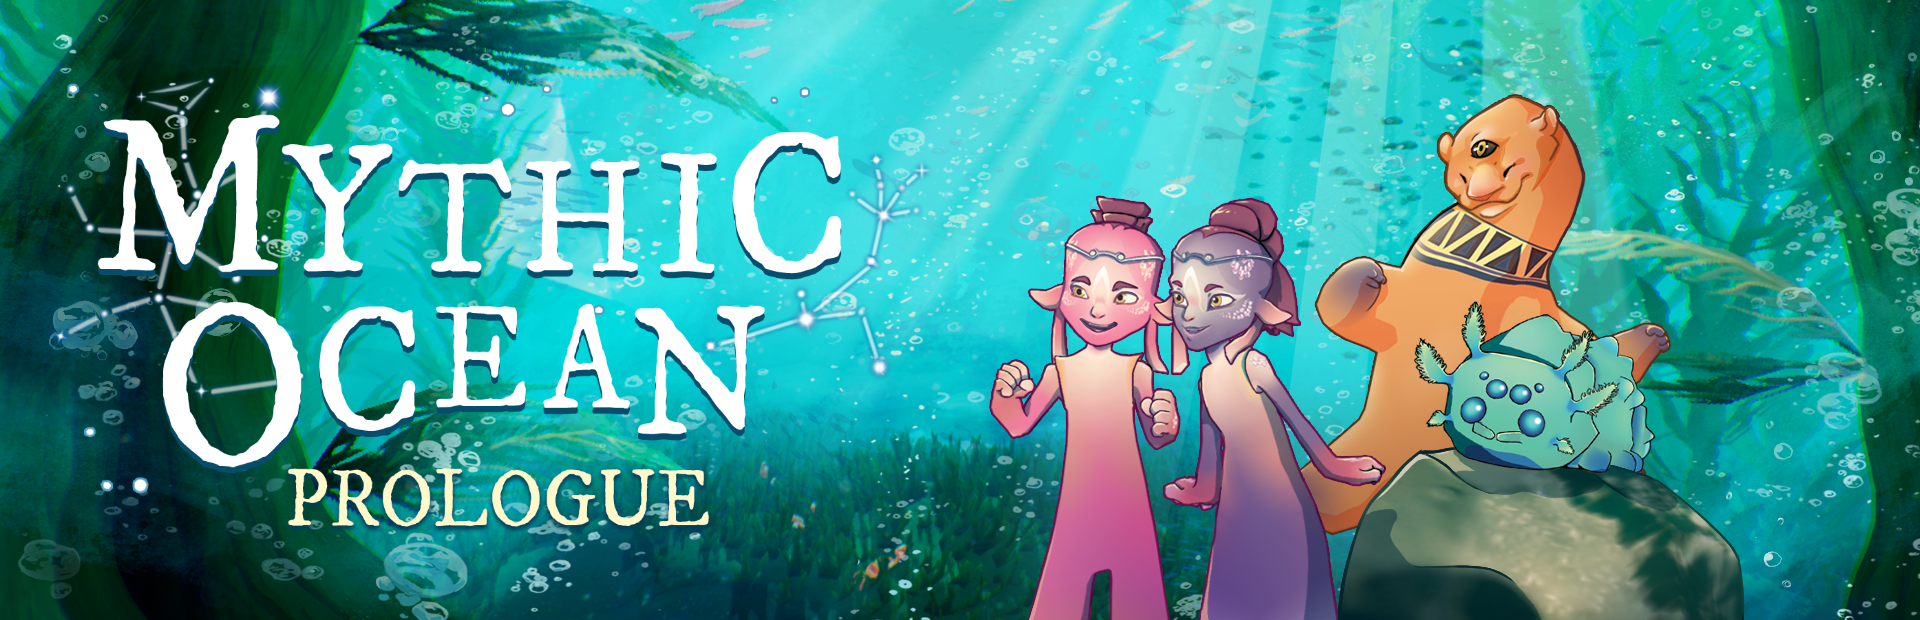 Mythic Ocean: Prologue